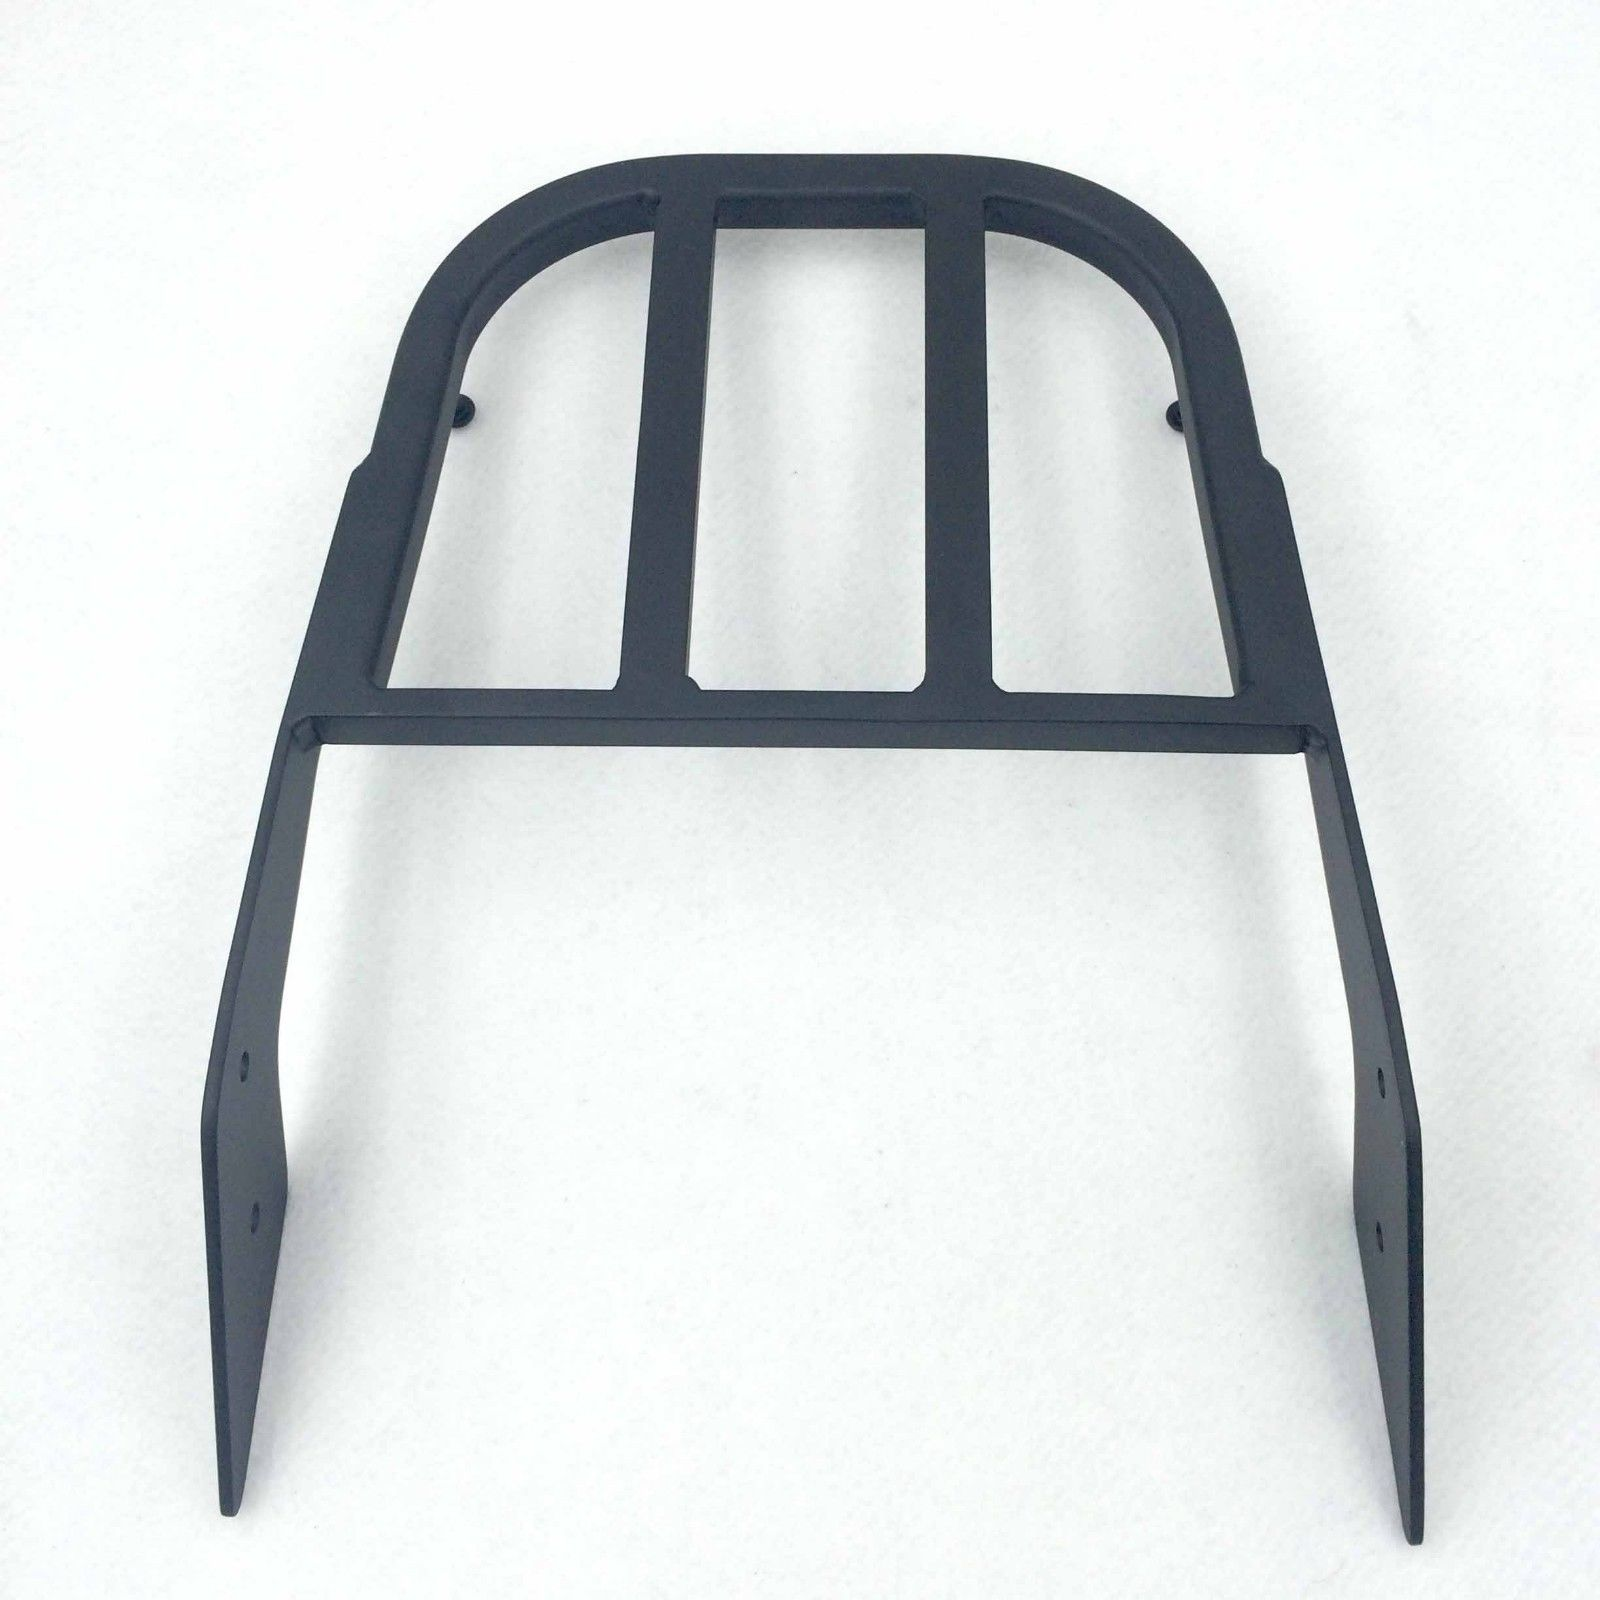 Black Sissy Bar Luggage Rack For Honda VTX VTX 1300N/R/S VTX 1800N/R/S<br><br>Aliexpress